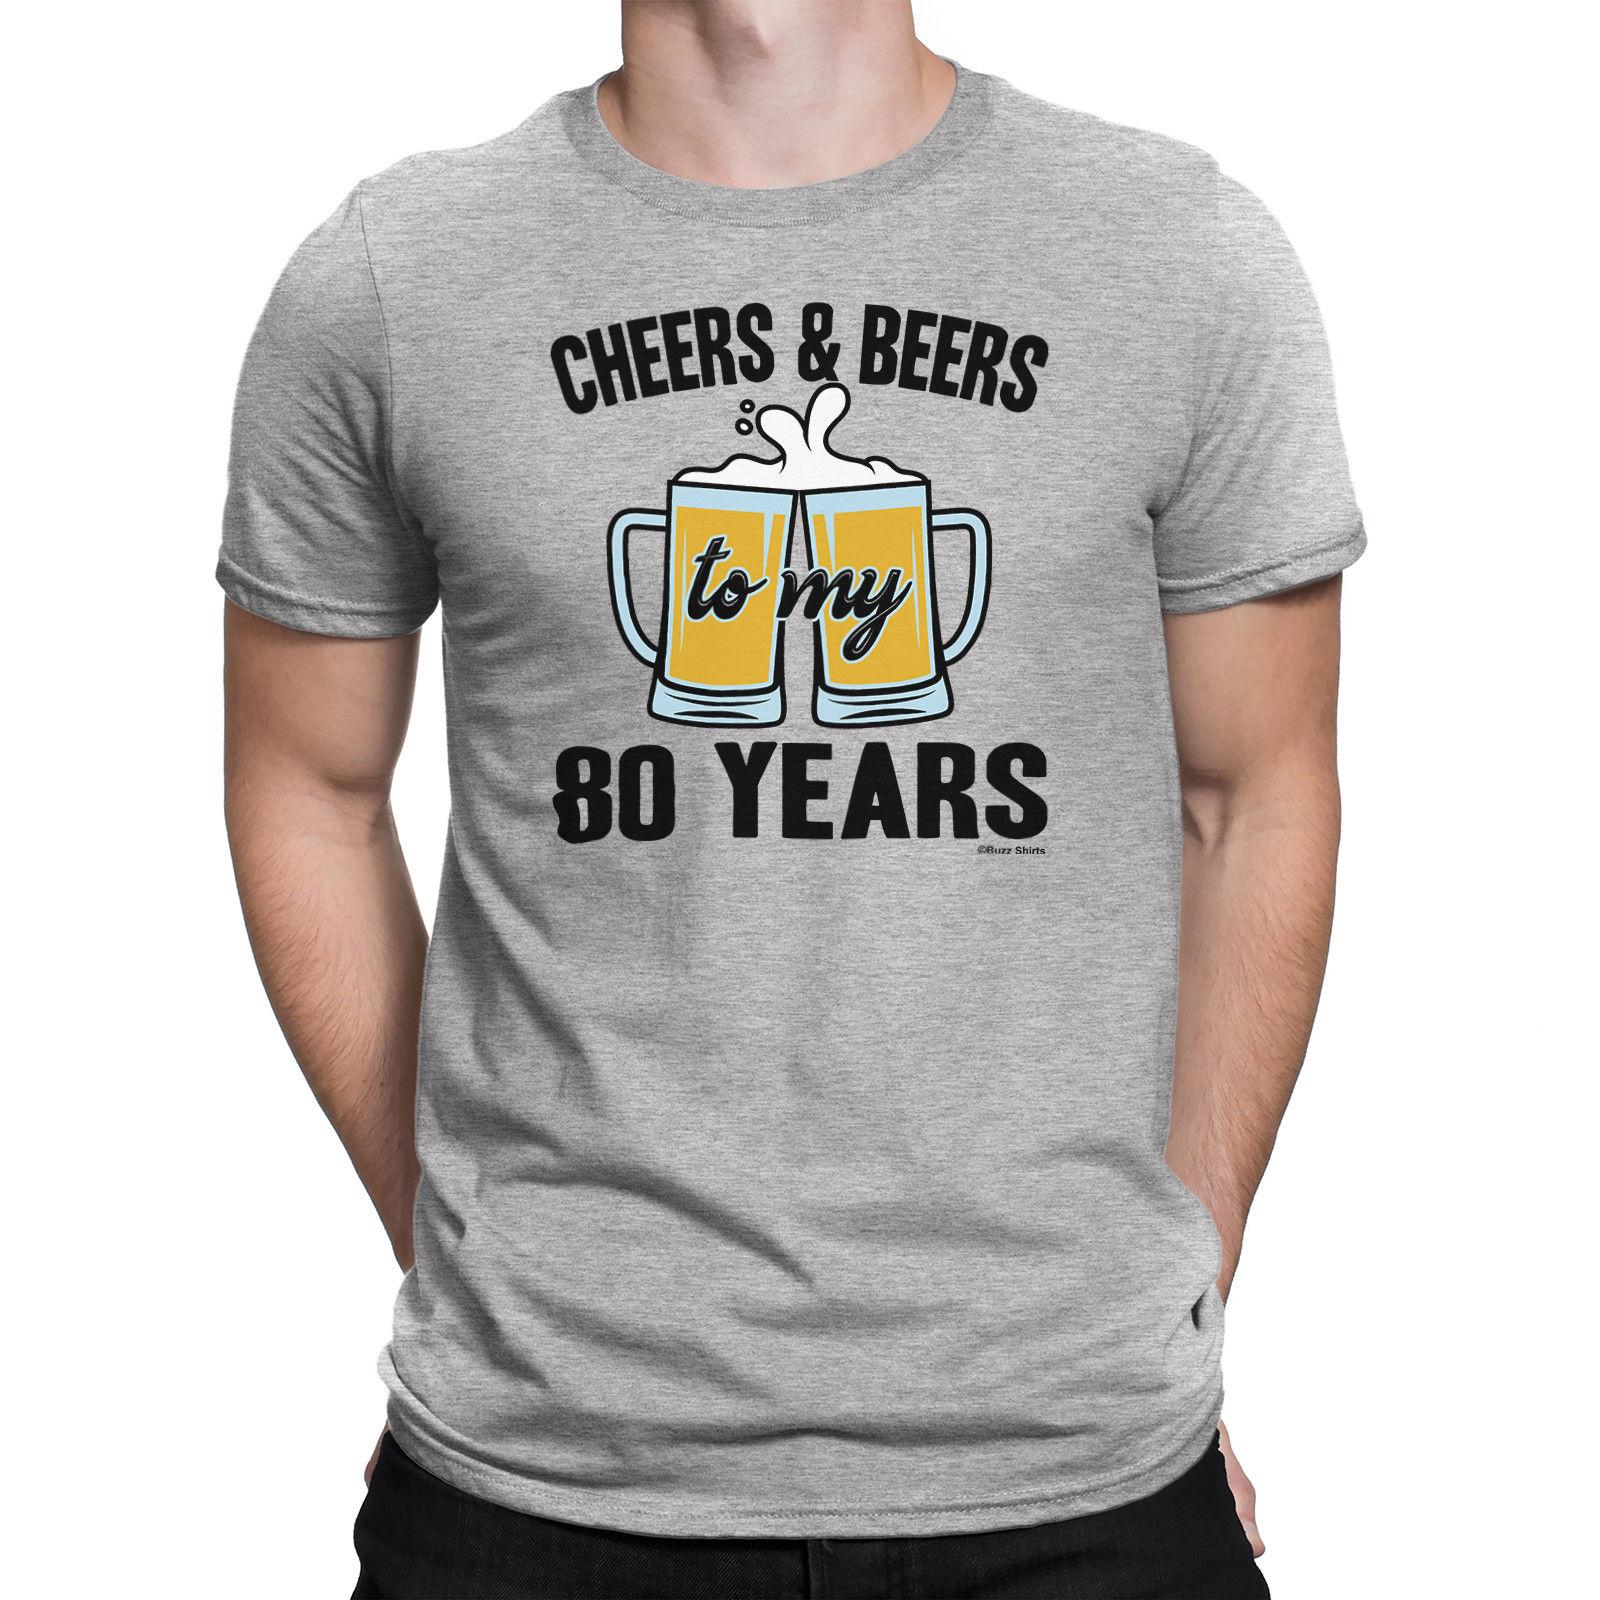 Mens 80th BIRTHDAY TShirt CHEERS And BEERS To 80 Years Old Gift Eighty O Neck Tops Tee Online Buy T Shirts Tna From Jingyan007 109